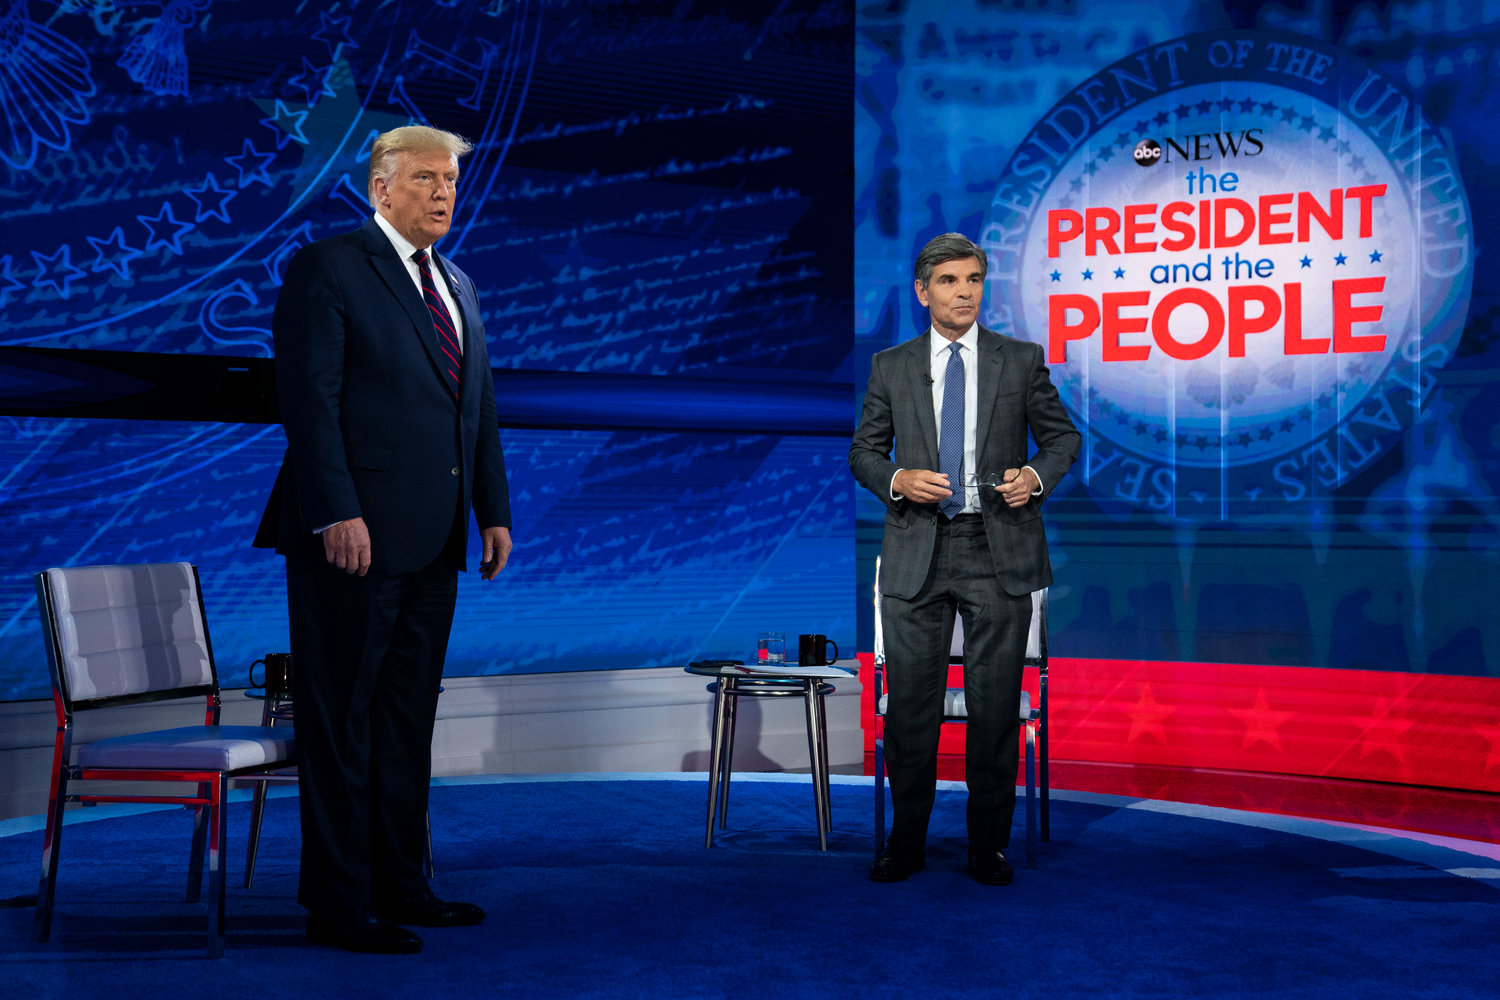 President Donald Trump talks with ABC News anchor George Stephanopoulos before a town hall at National Constitution Center, Tuesday, Sept. 15, 2020, in Philadelphia. (AP Photo/Evan Vucci)